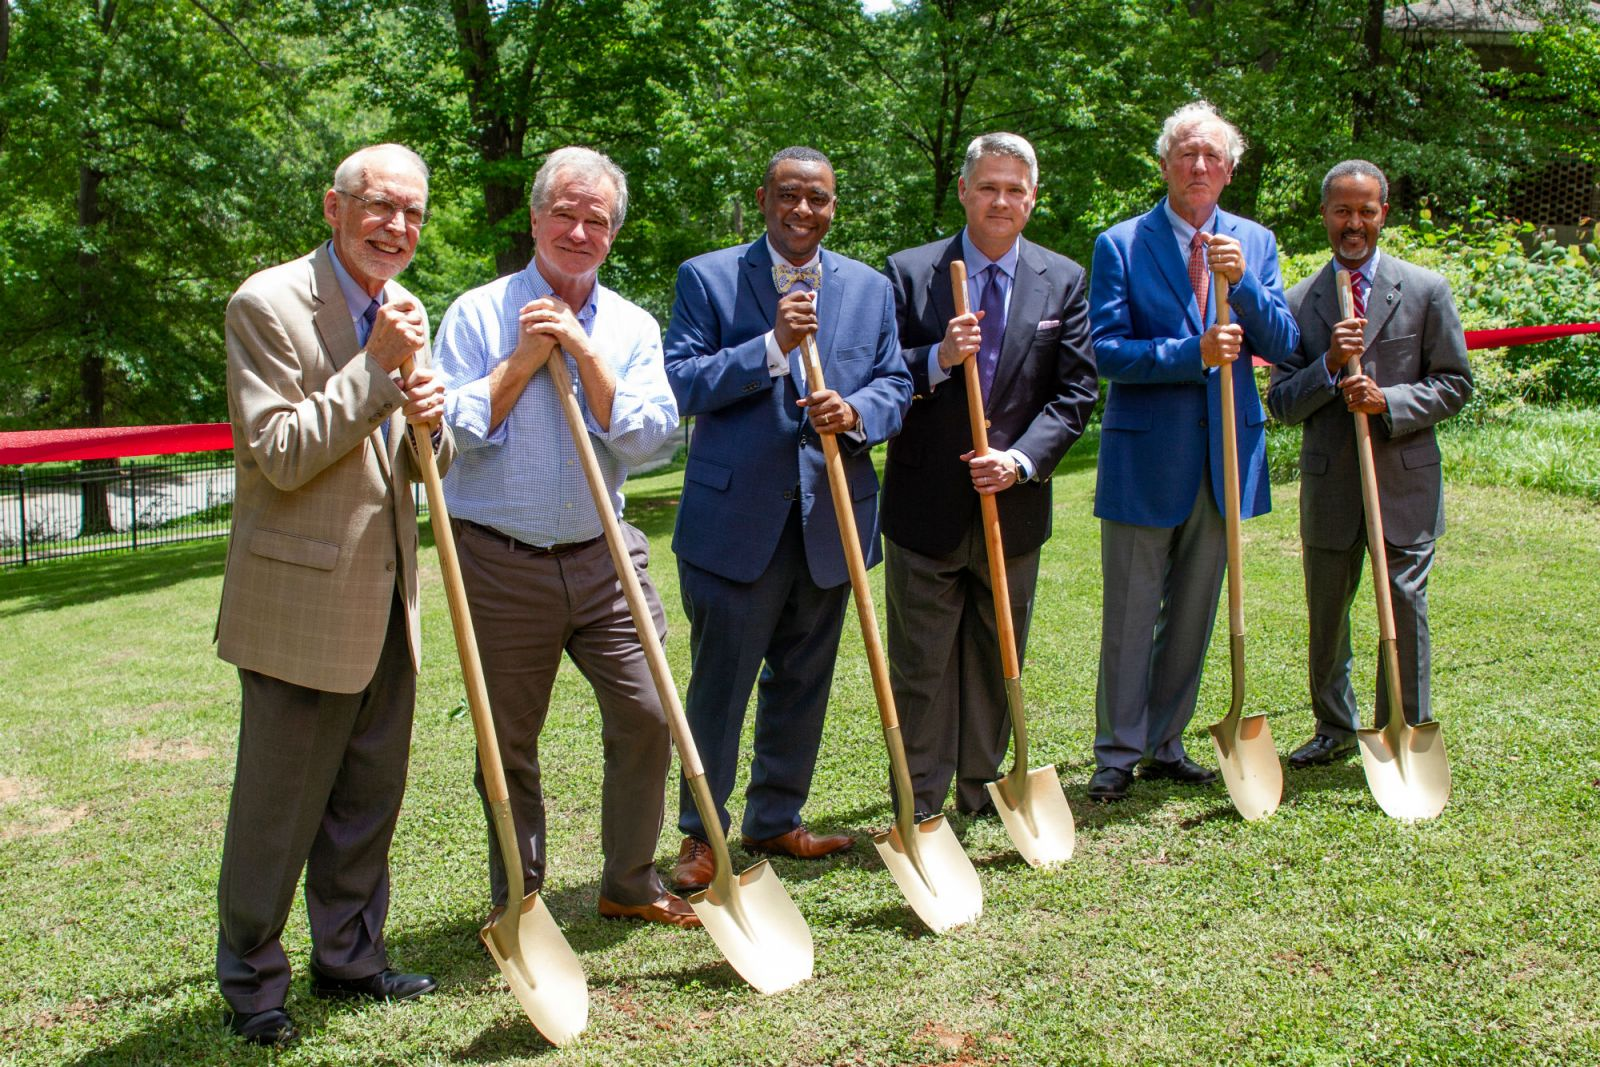 Participating in the groundbreaking of the new music building for the S.C. Governor's School for the Arts and Humanities were, from left, Bruce Halverson, former president; Bob Hughes, board member; LeShown Goodwin, board member; Chad Prosser, board chairman; Peter Parrott, board member and Cedric Adderley, president. (Photo/Provided)